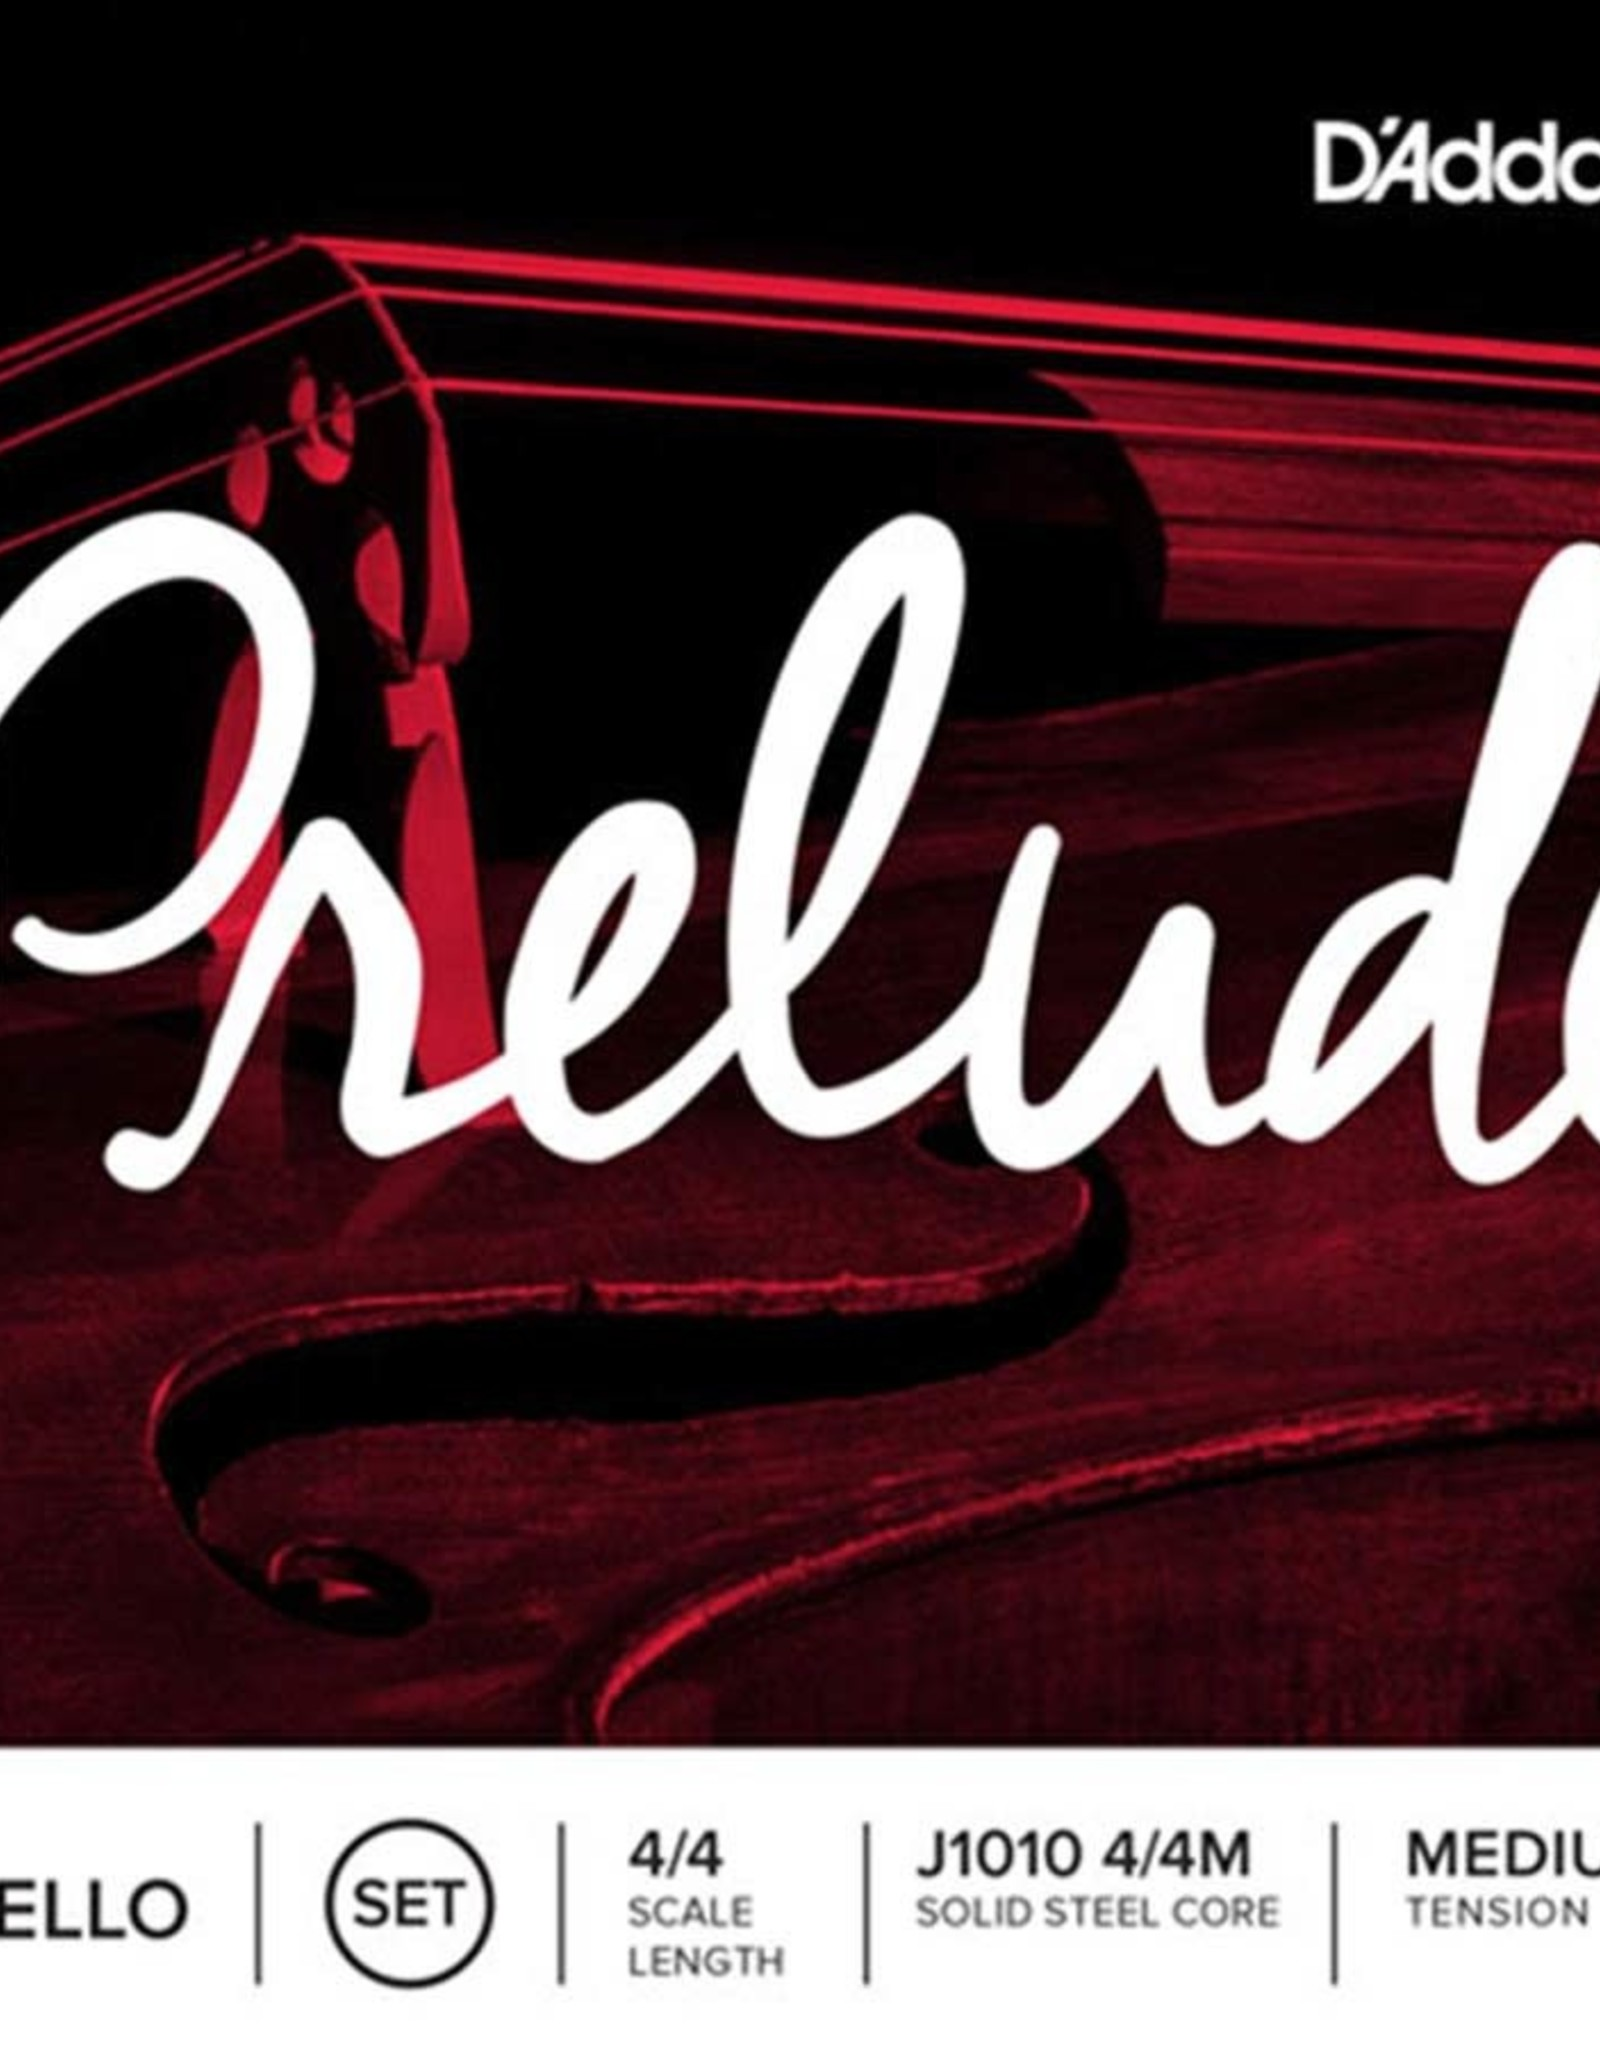 D'ADDARIO Prelude snarenset cello, 4/4